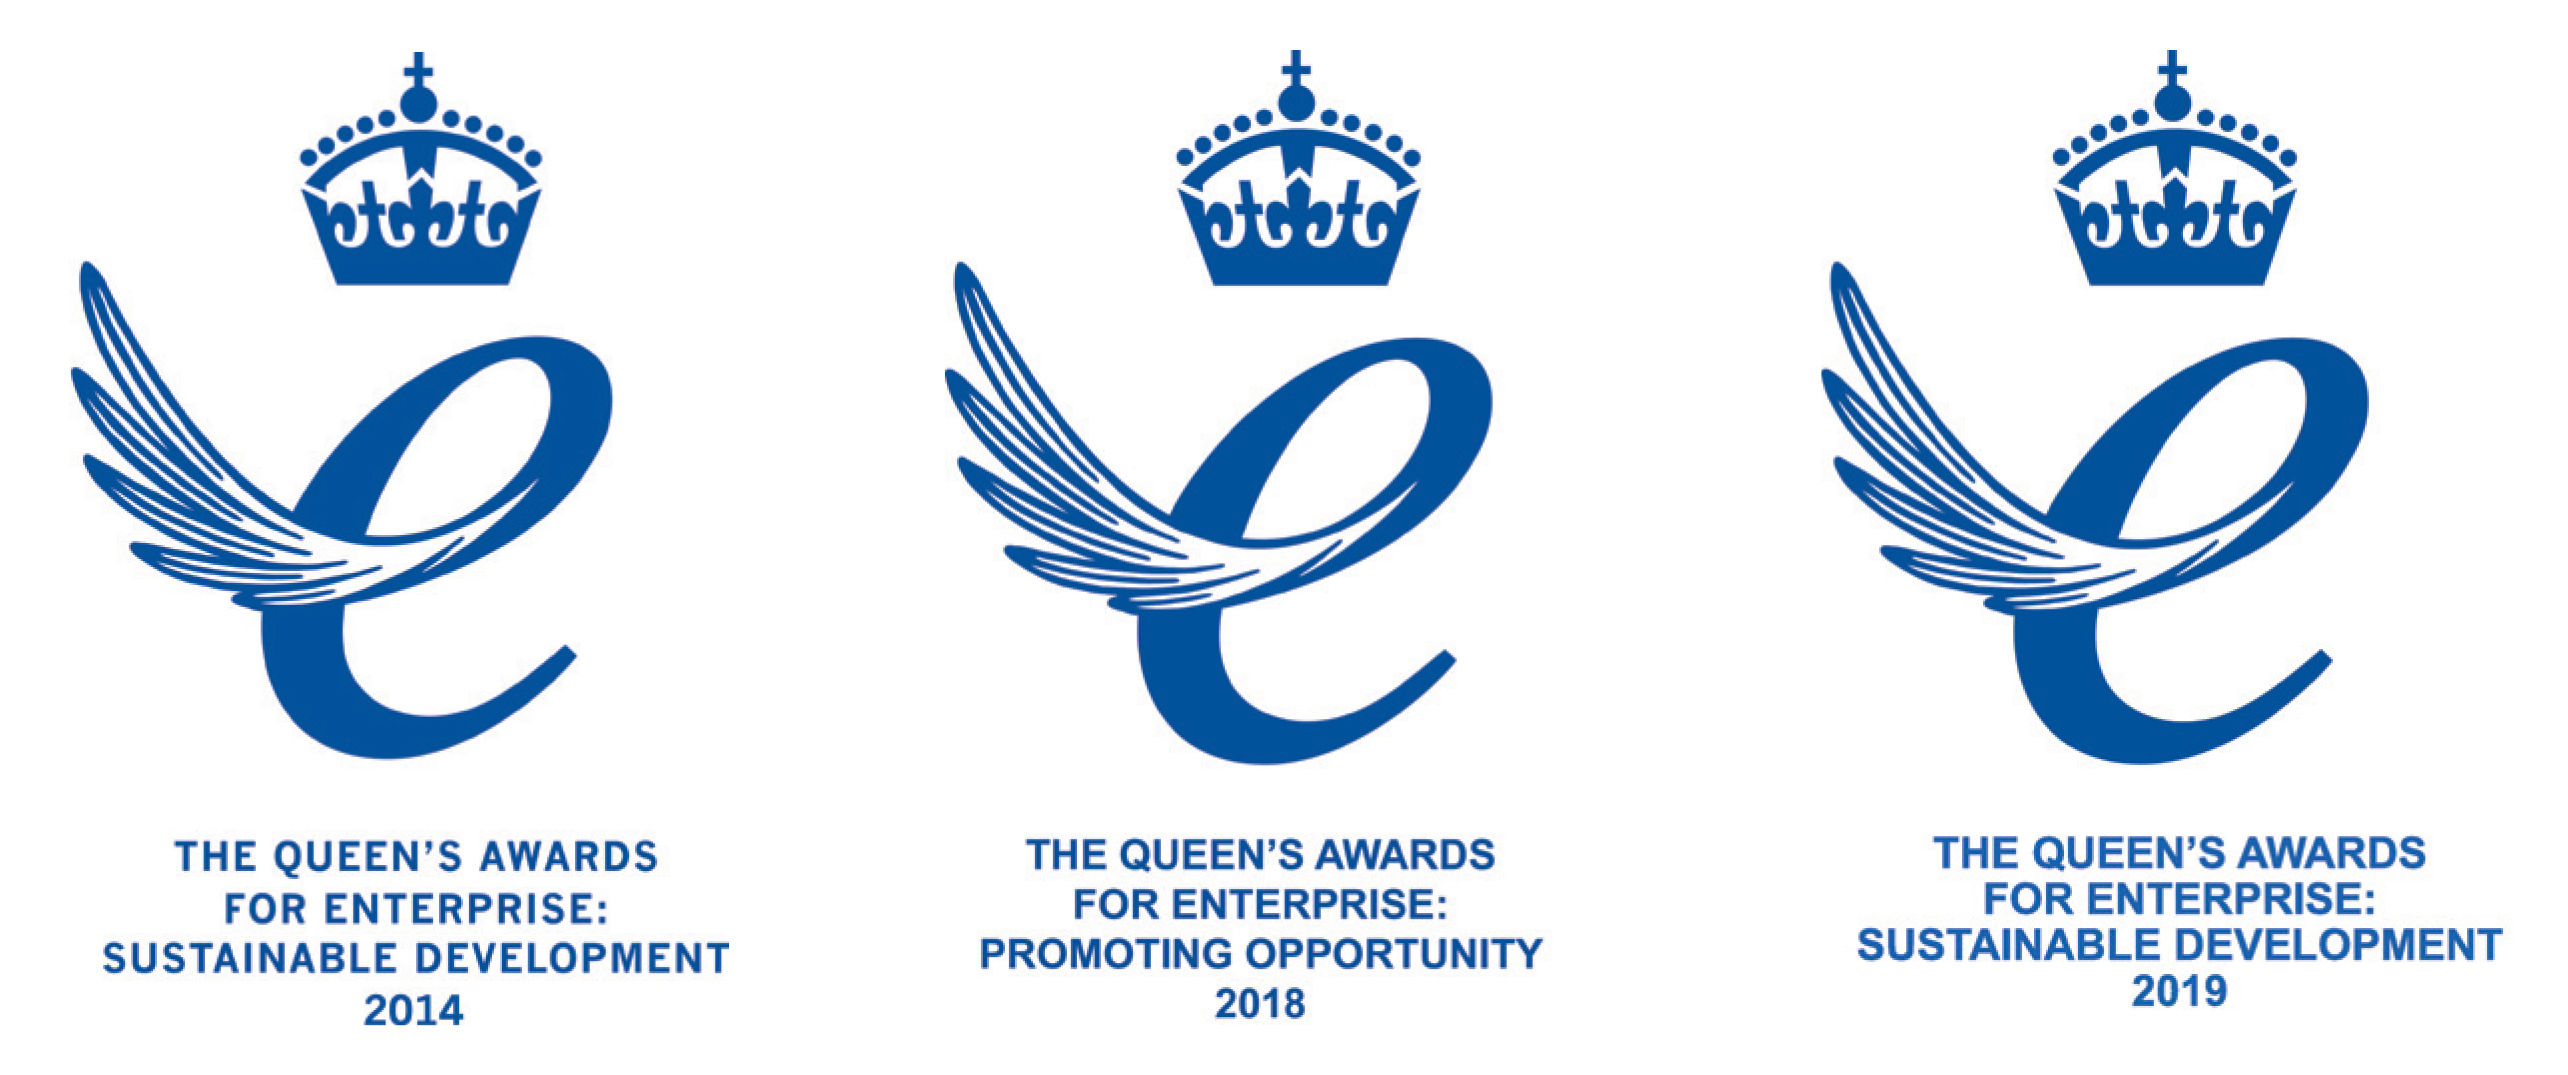 Queen's Awards Logos - Group.jpg